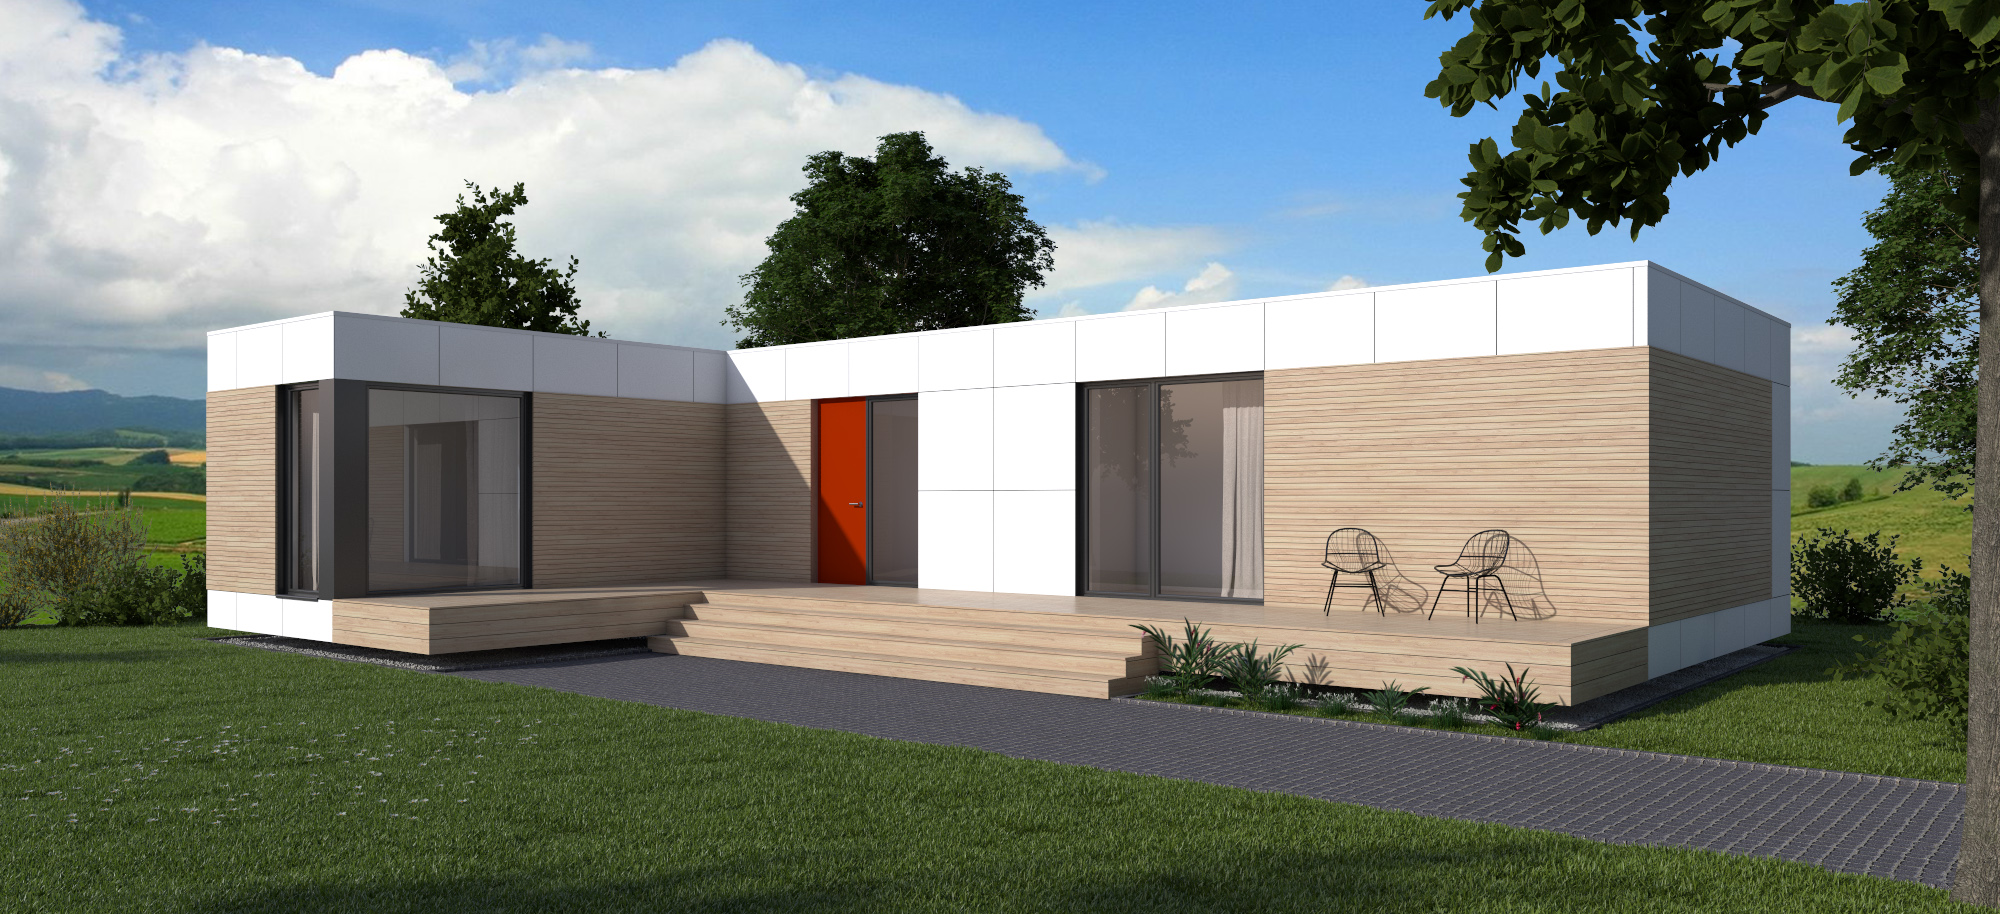 Domino Homes Modern Modular Prefab Container Homes